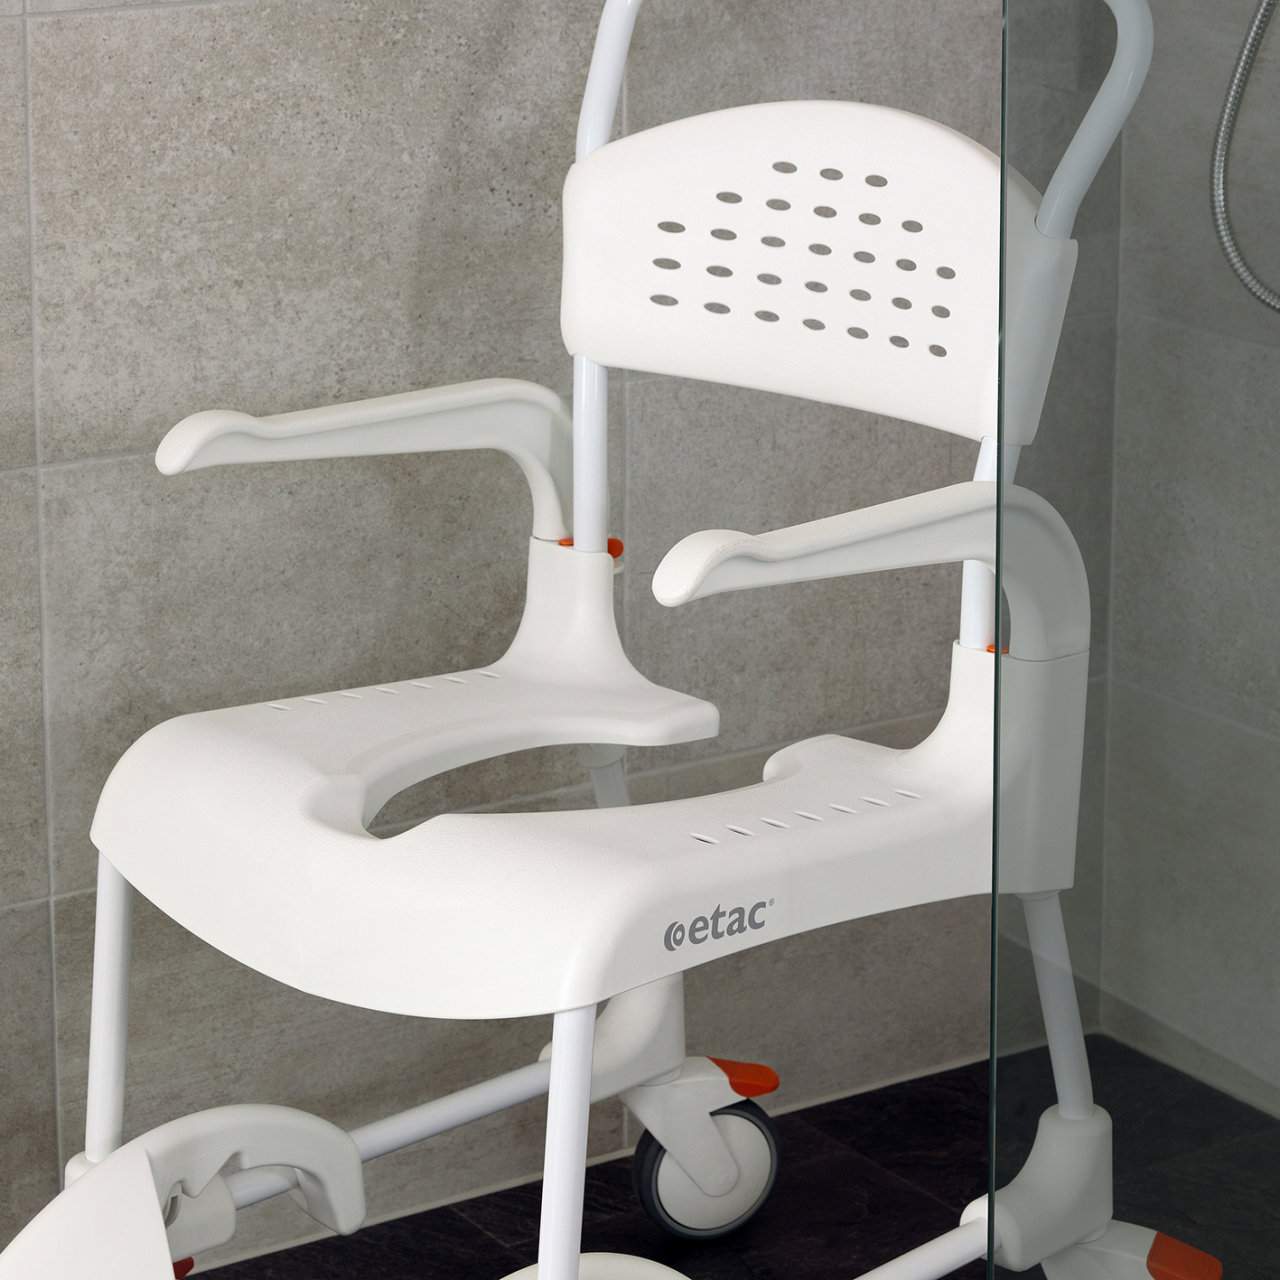 Etac Clean shower commode chair | Etac.com